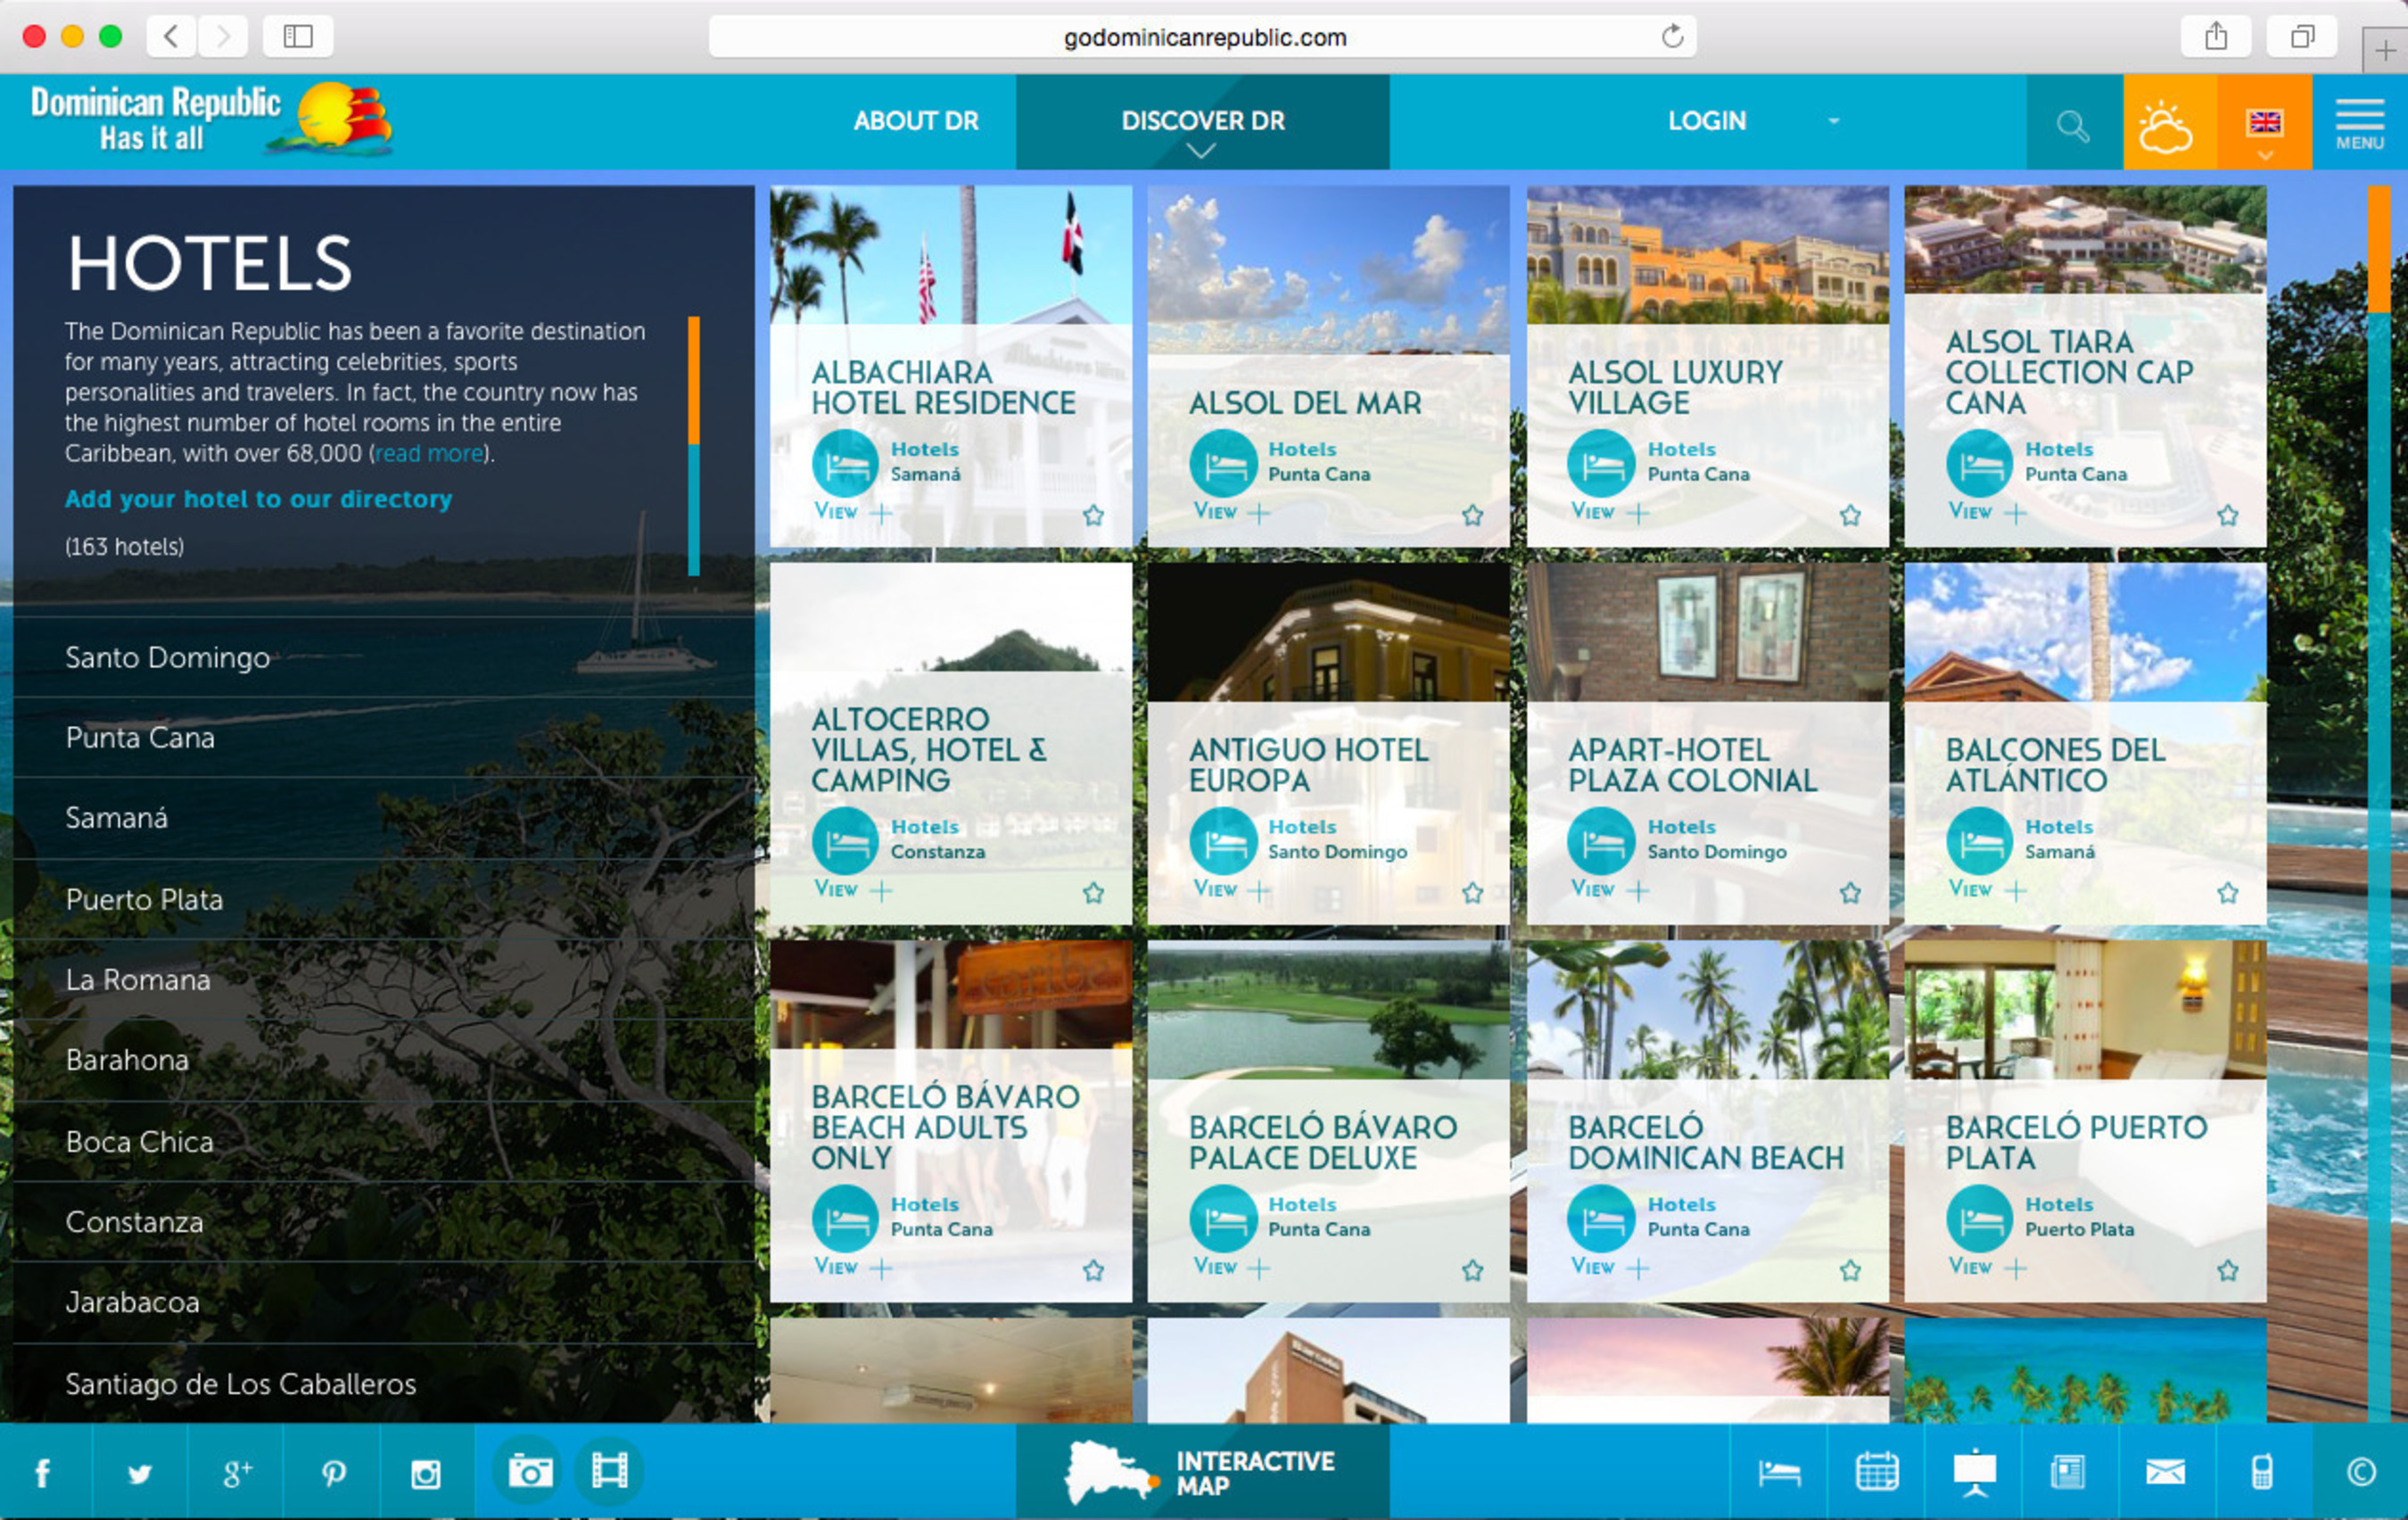 GoDominicanRepublic.com's brand-new interactive hotel directory, one of the main site updates, was created to give guests researching their travels the best opportunity to find accommodations perfectly suited to their needs among the country's nearly 70,000 available hotel rooms. Optimized for mobile, hotels are profiled by location, nearest airport, resort size, family-friendliness, all-inclusive amenities, meal plan offerings, deluxe designations, wedding facilities, golf facilities, pet-friendliness and much more.